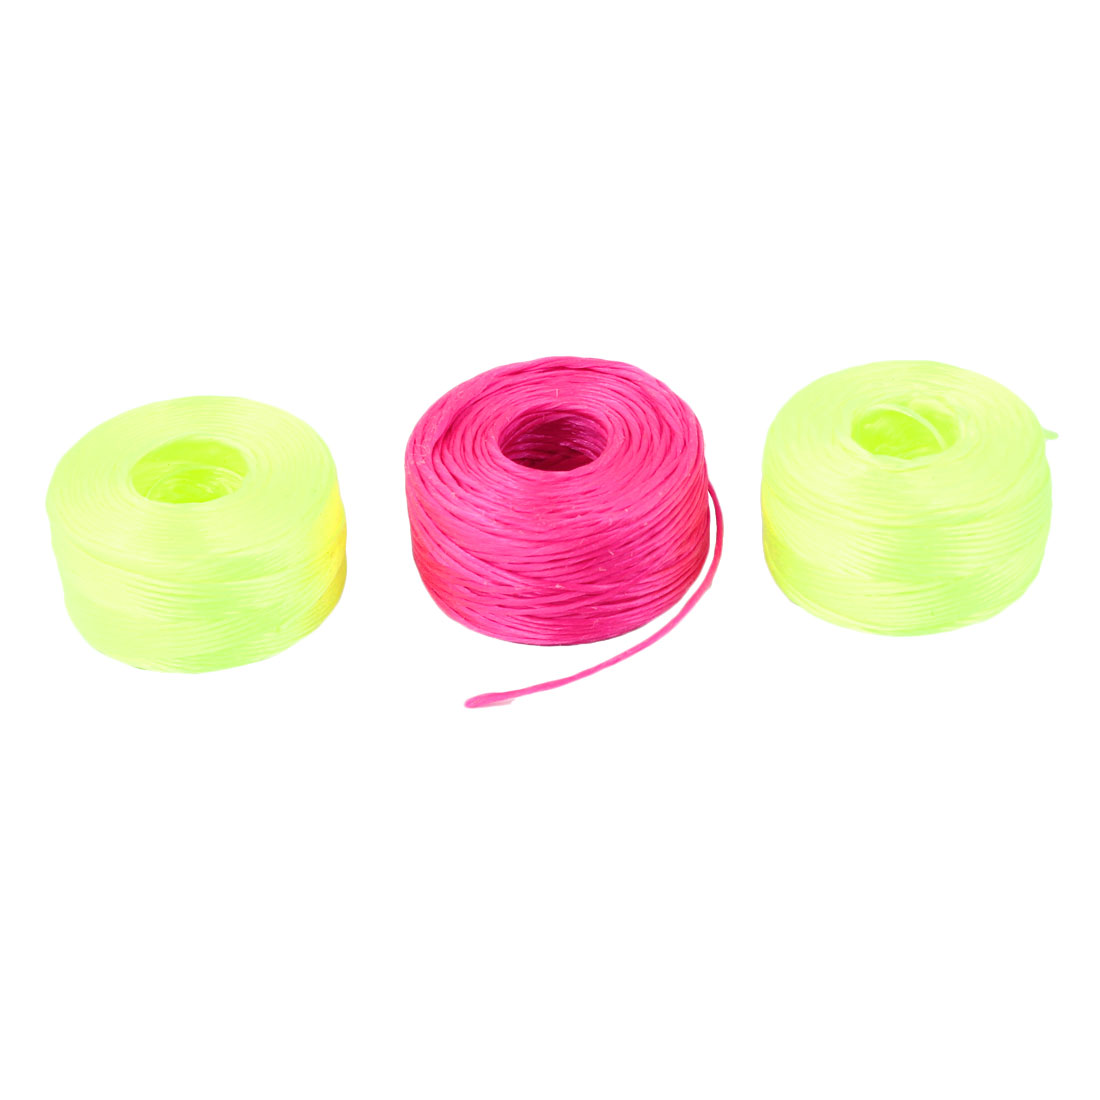 3PCS 0.203mm Dia Fuchsia Yellow Green Nylon Freshwater Fishing Line String 300M